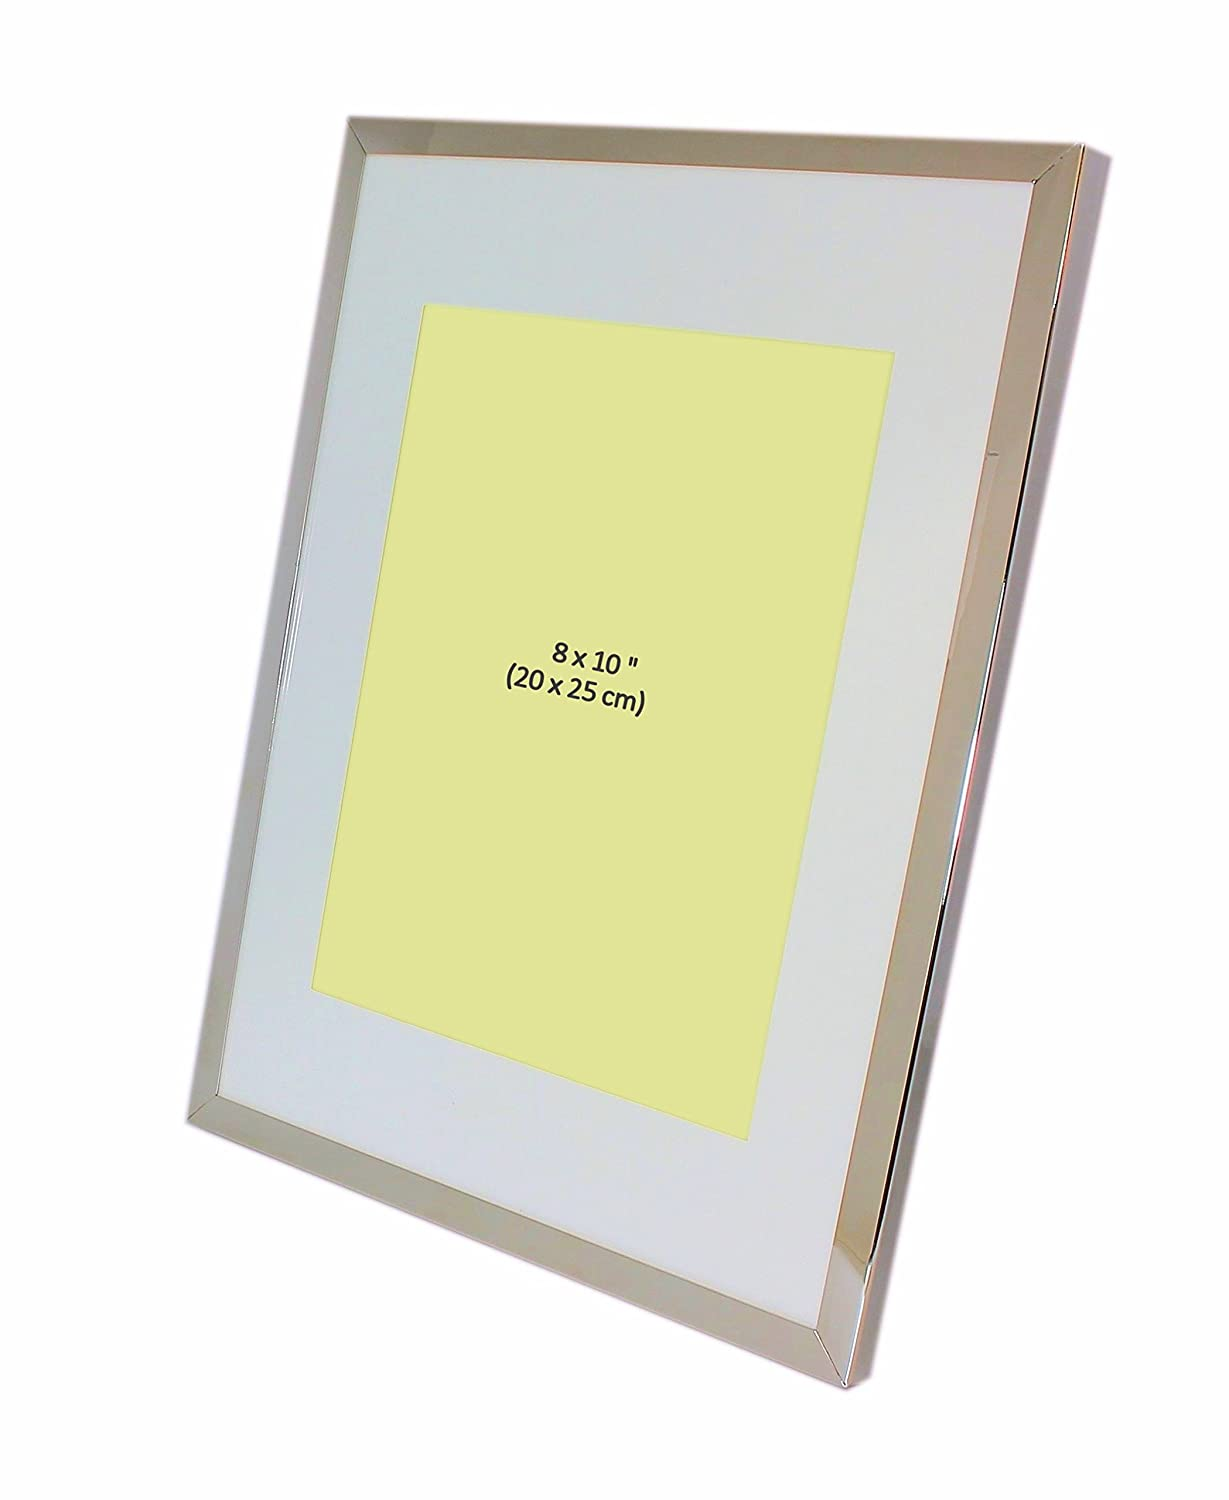 Nickel Picture Frames Choice Image - Craft Decoration Ideas